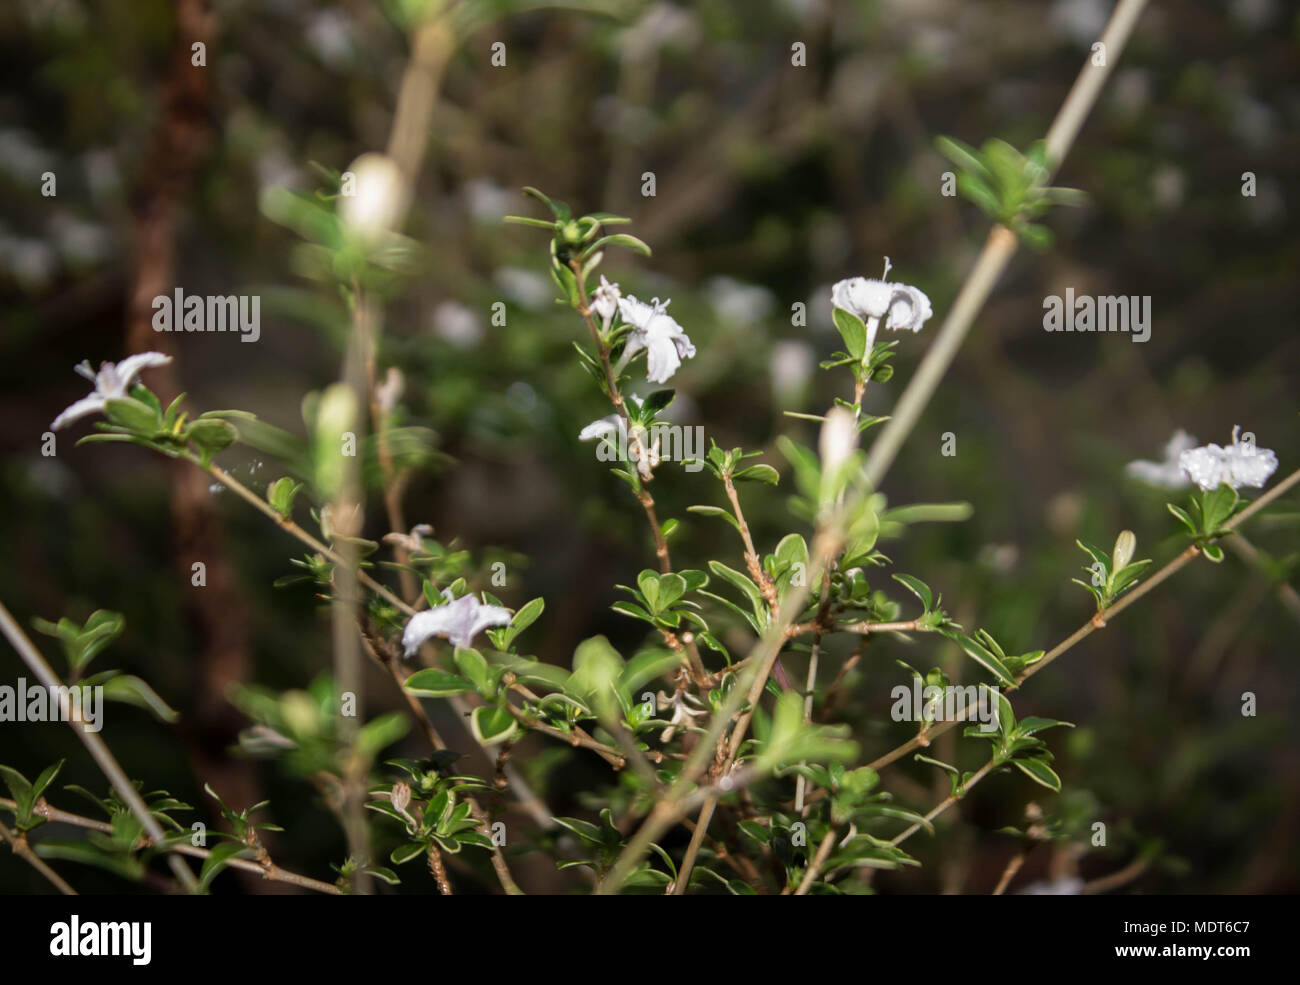 Small White Flowers On Twigs With Green Foliage Subtropical Plant